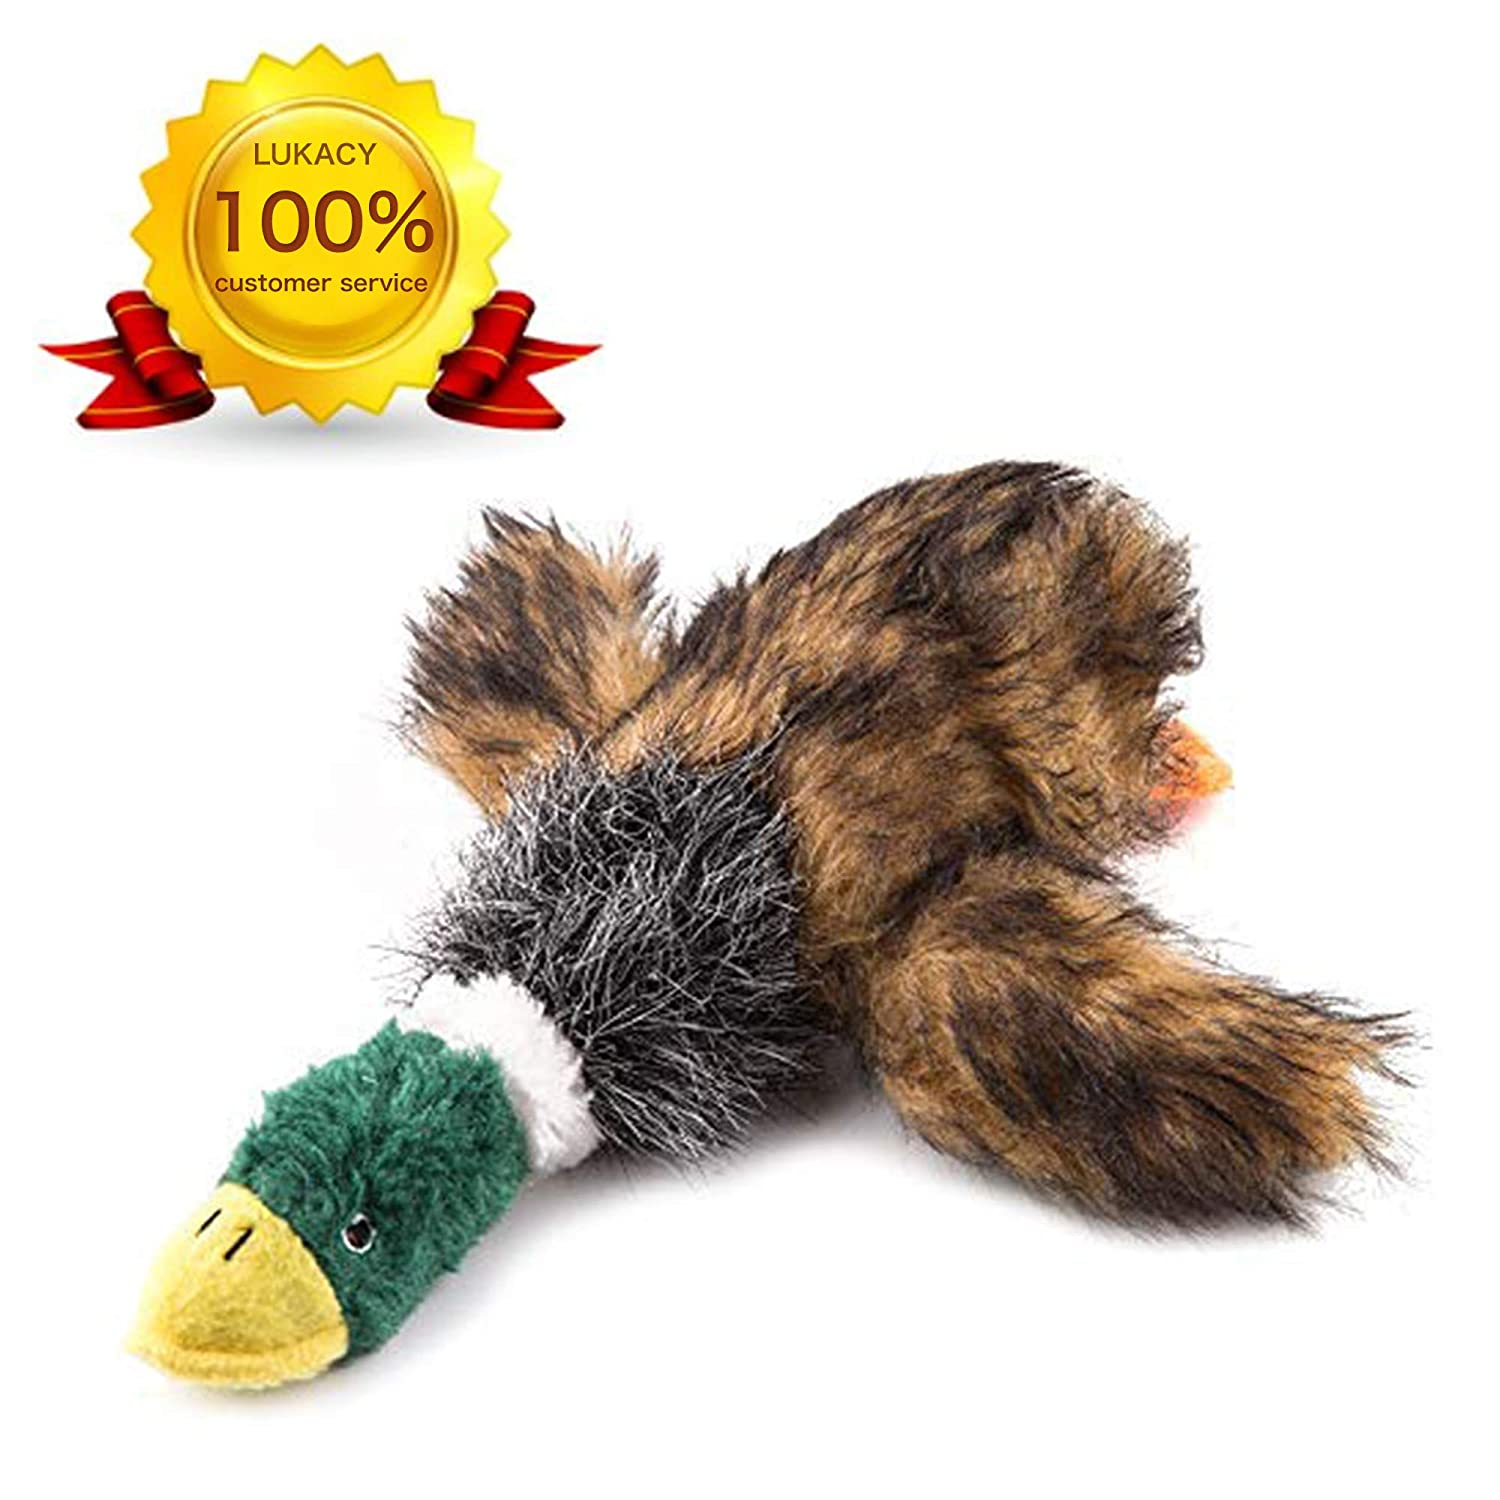 LUKACY Dog Squeaky Toys?Mallard Dog Toy?Dquacking Bird Duck Dog Toy? Bird Dog Chew Toy Green